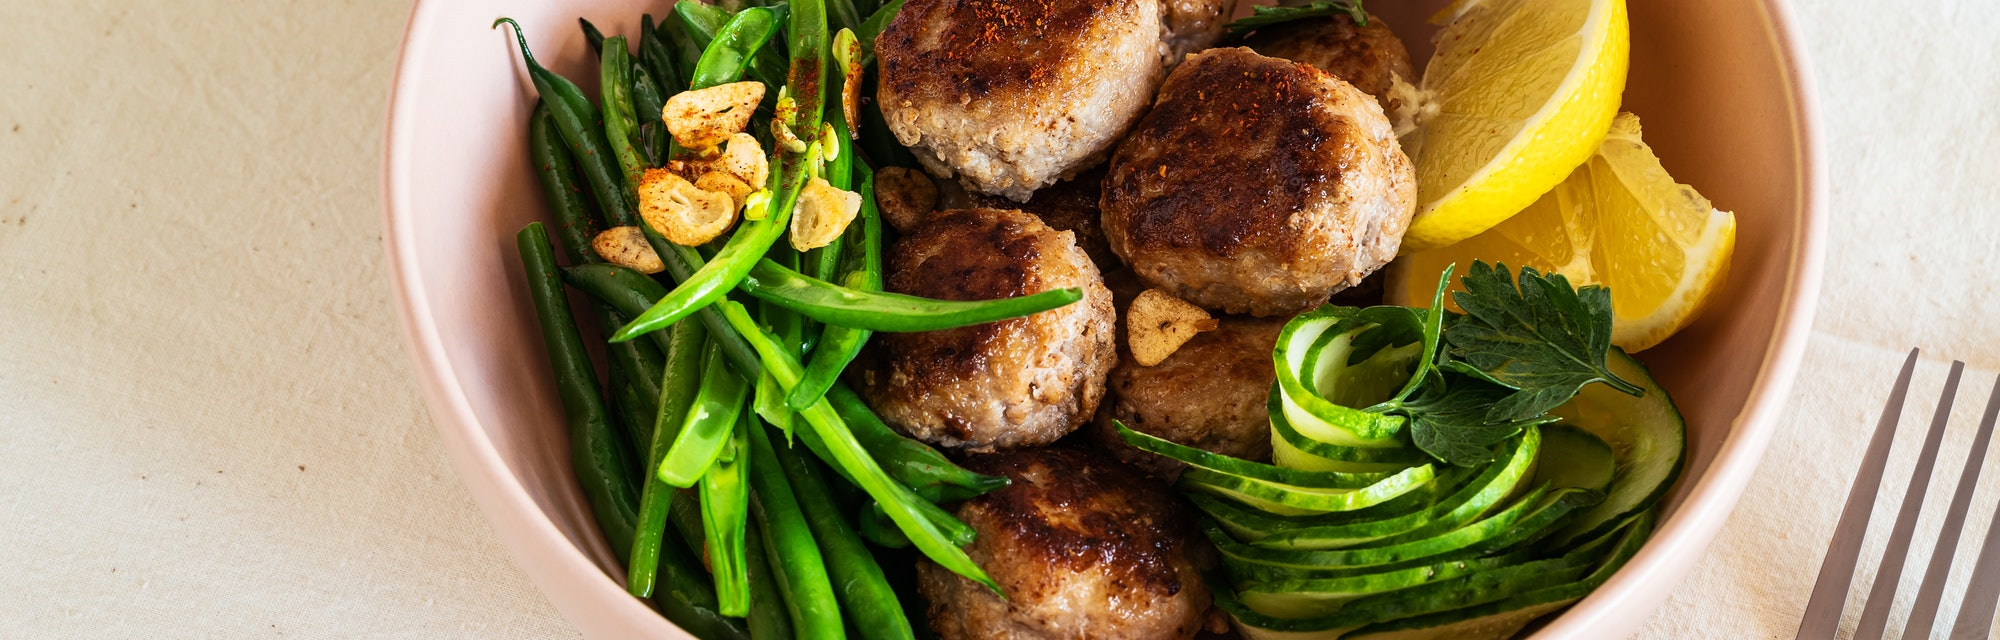 Rustic table with meal. Pork meatballs with sauteed green beans,  cucumber salad,  high angle view